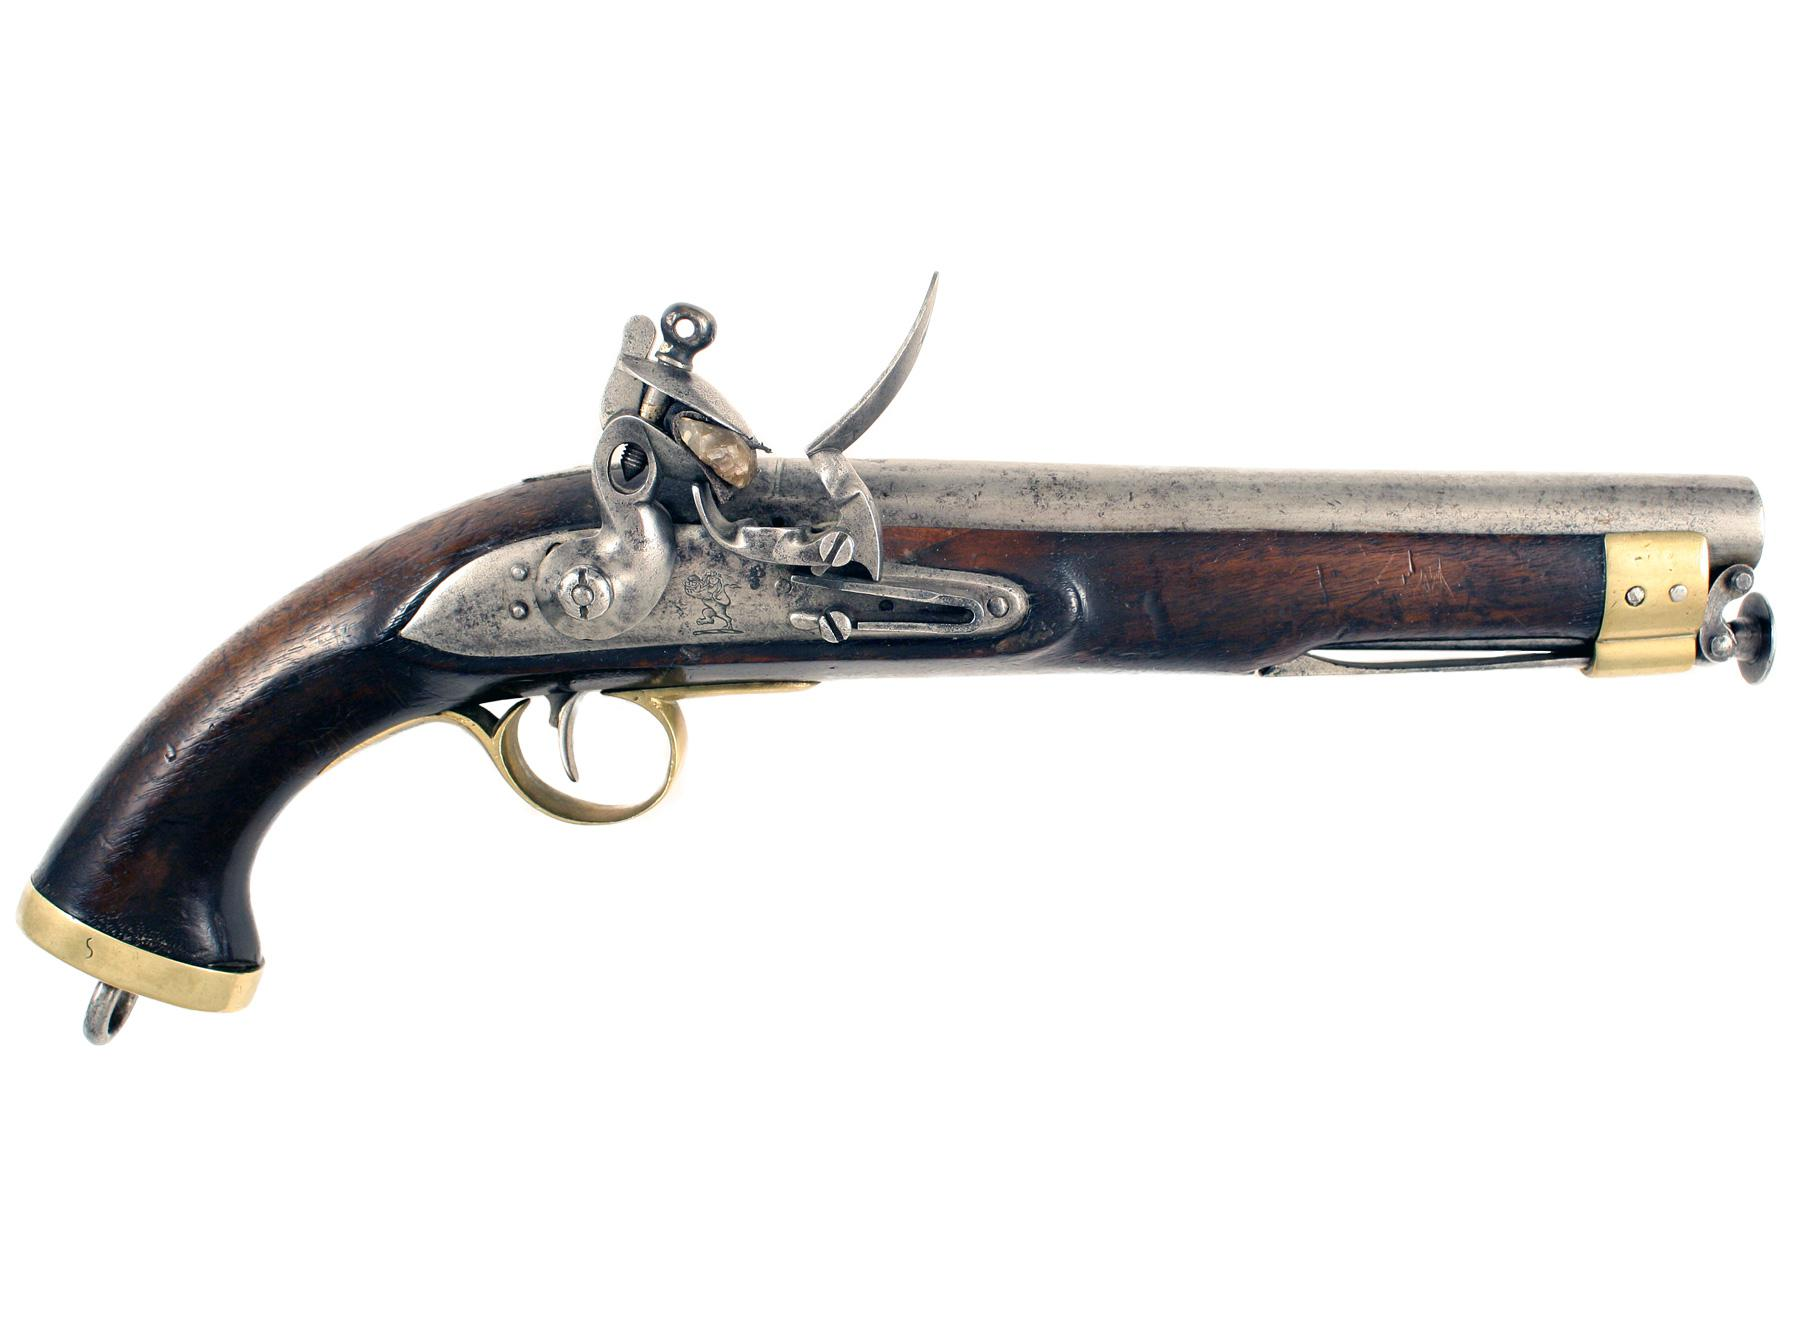 A Flintlock East India Company Pistol